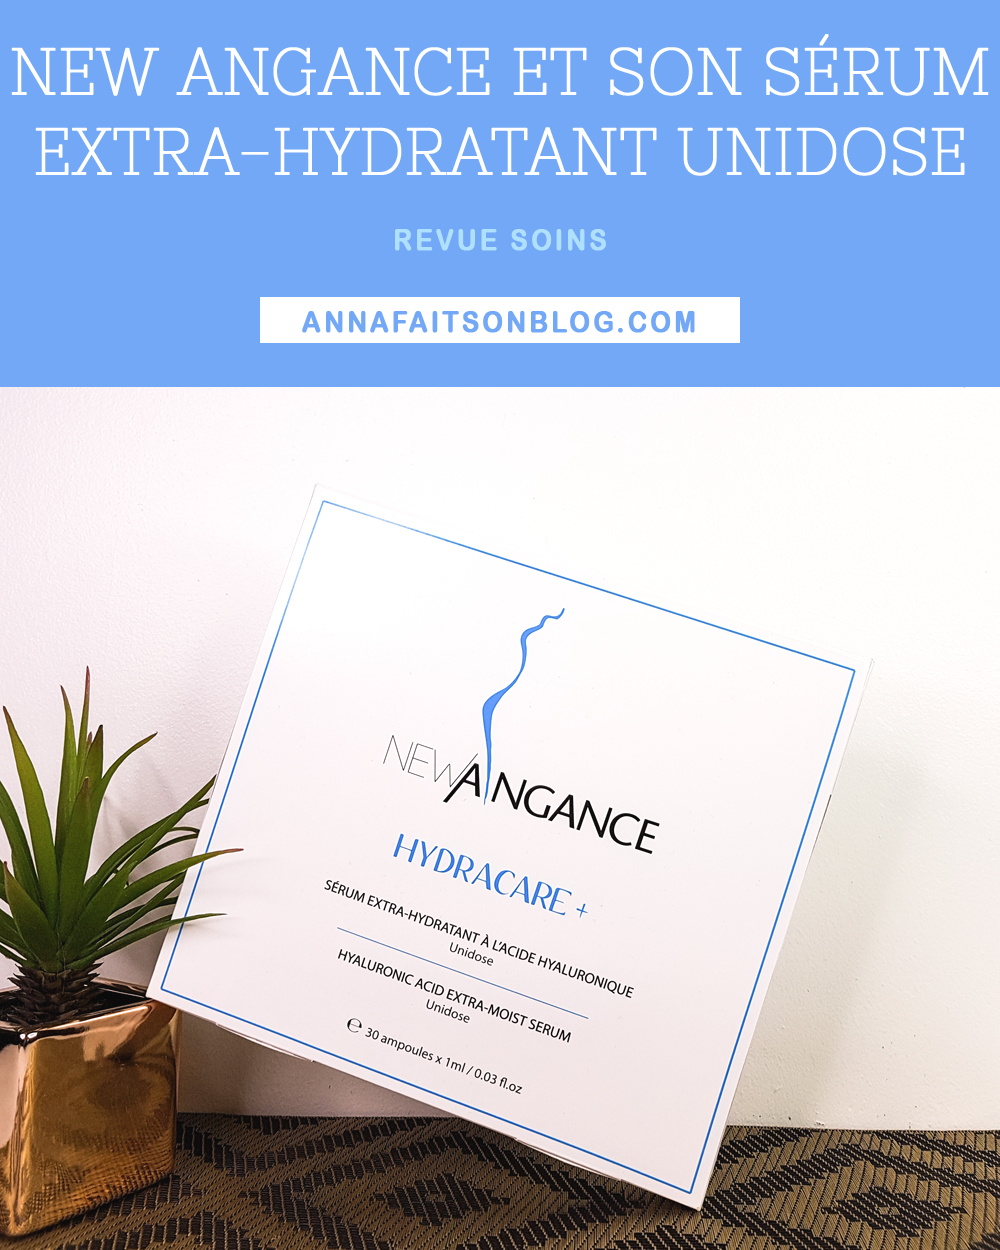 New Angance - Sérum Hydracare+